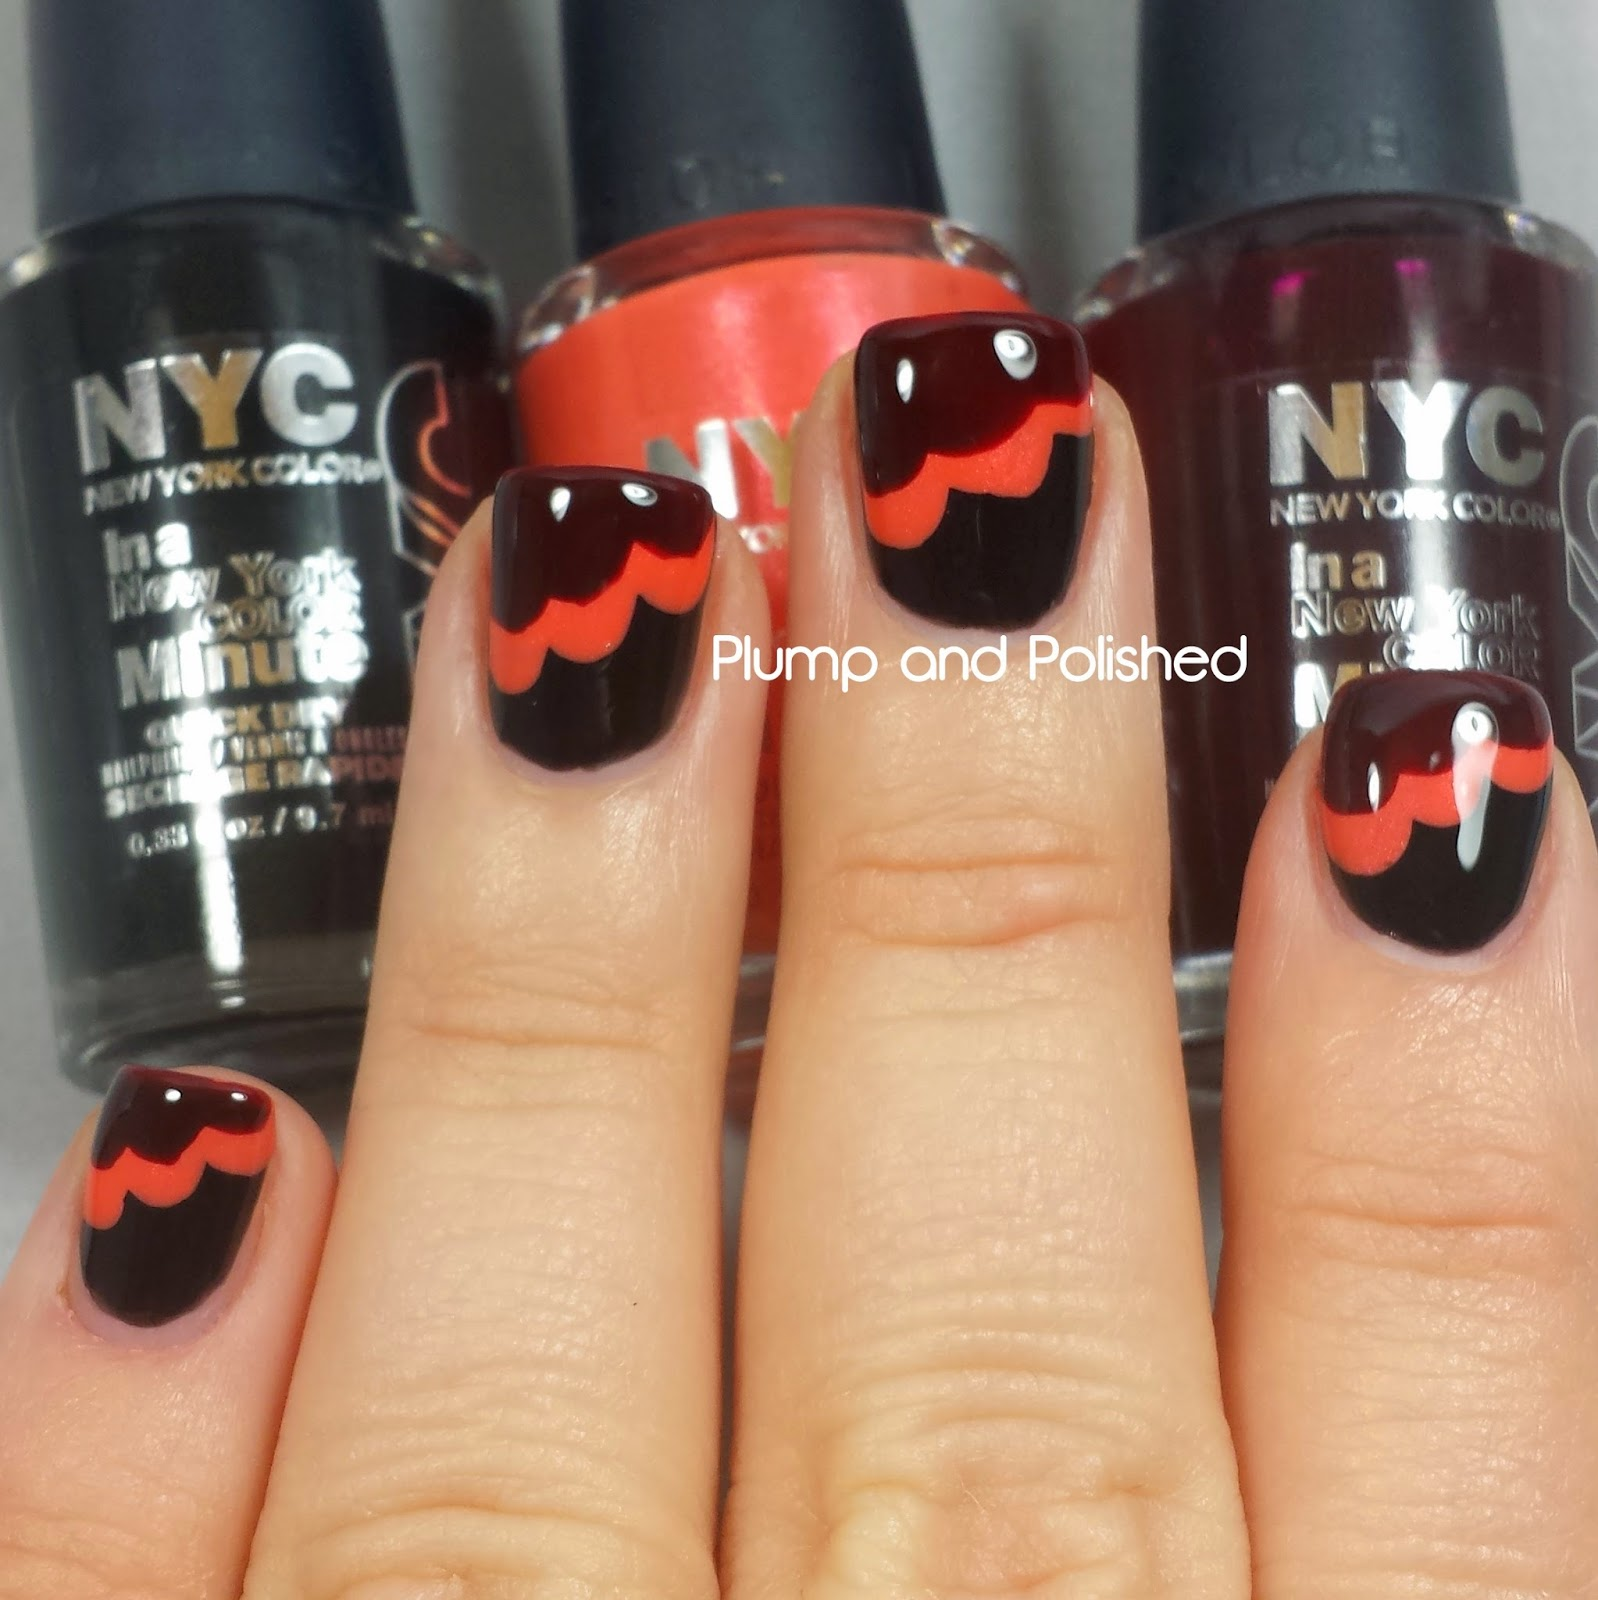 NYC New York Color - Midnight Beauty Collection Nail Art